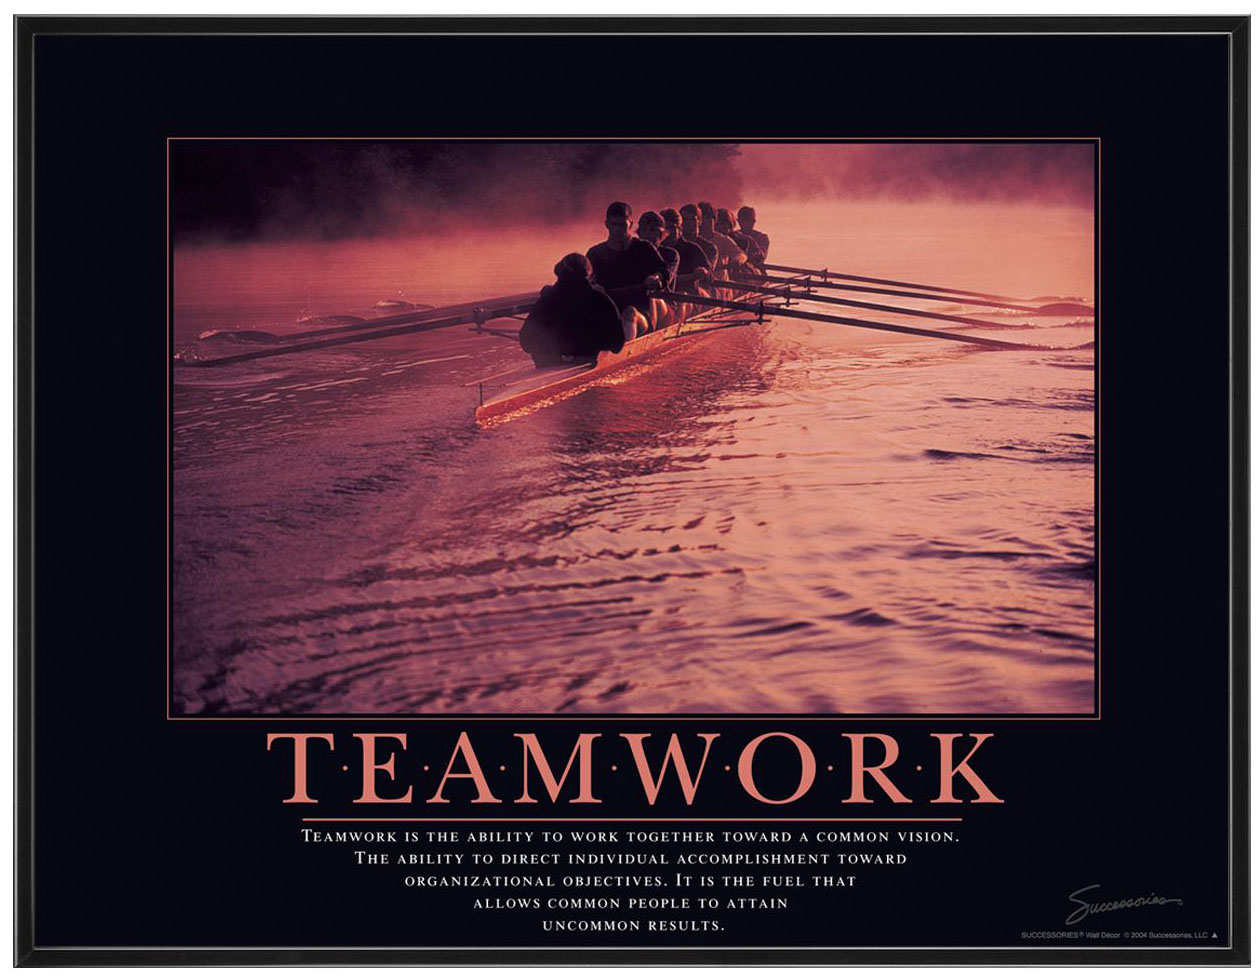 Teamwork Quotes For The Office. QuotesGram